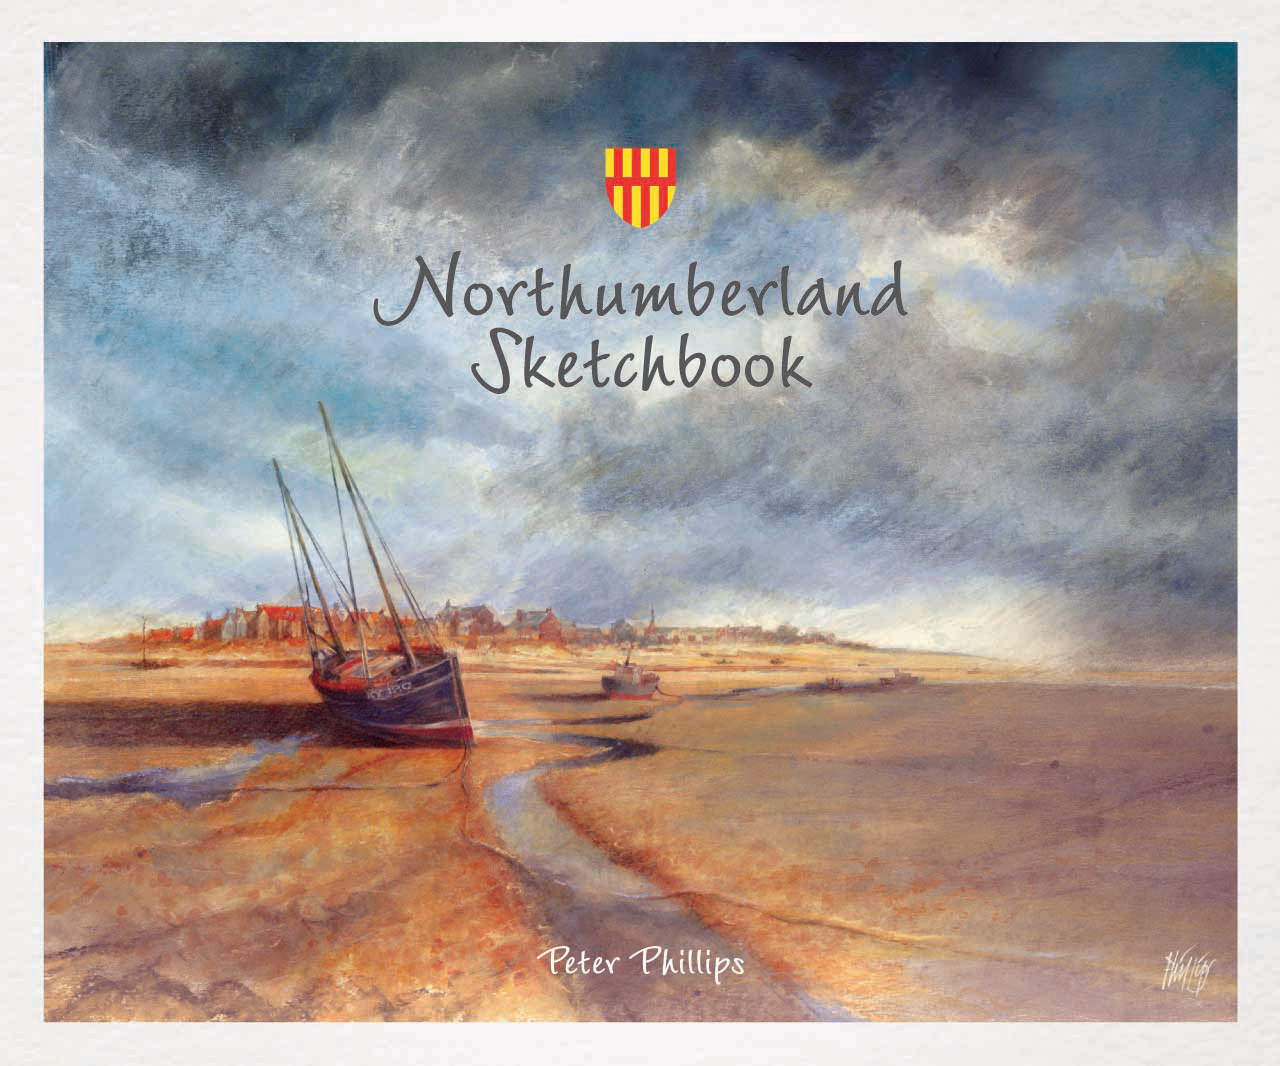 'Northumberland Sketchbook' cover